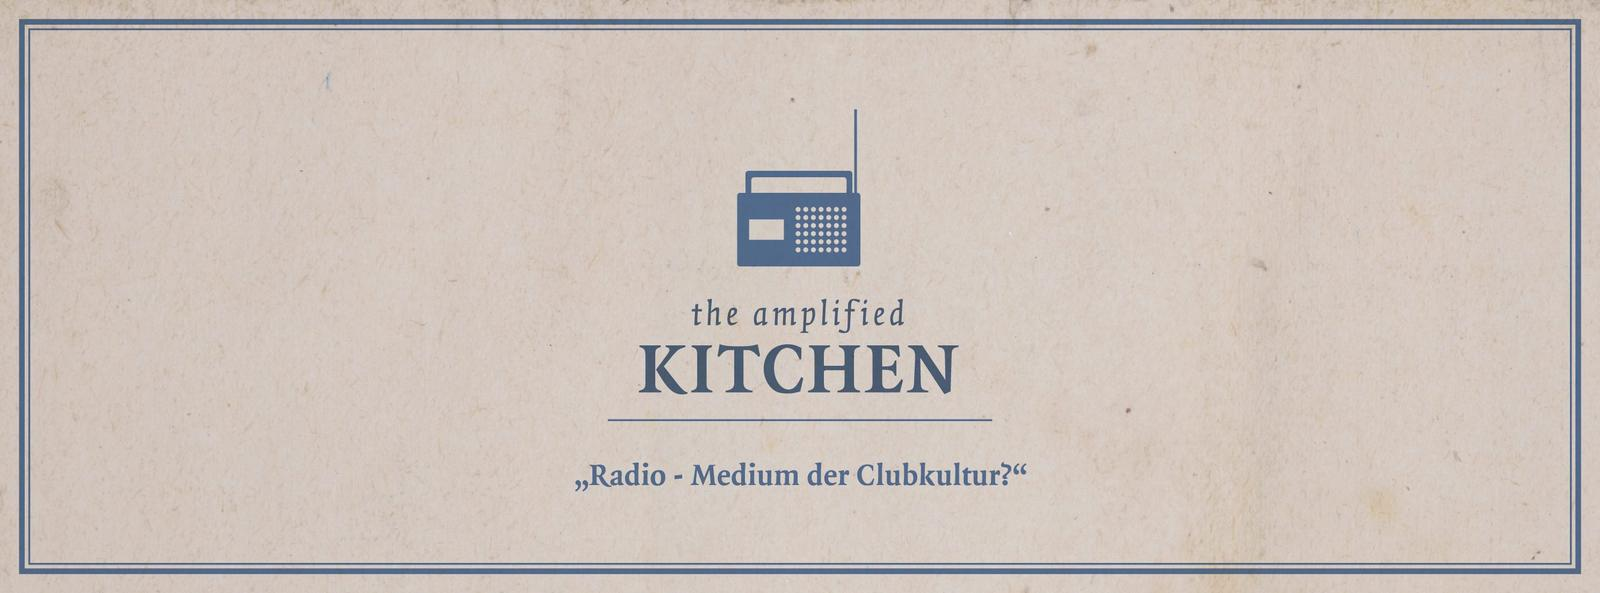 amplified kitchen flyer